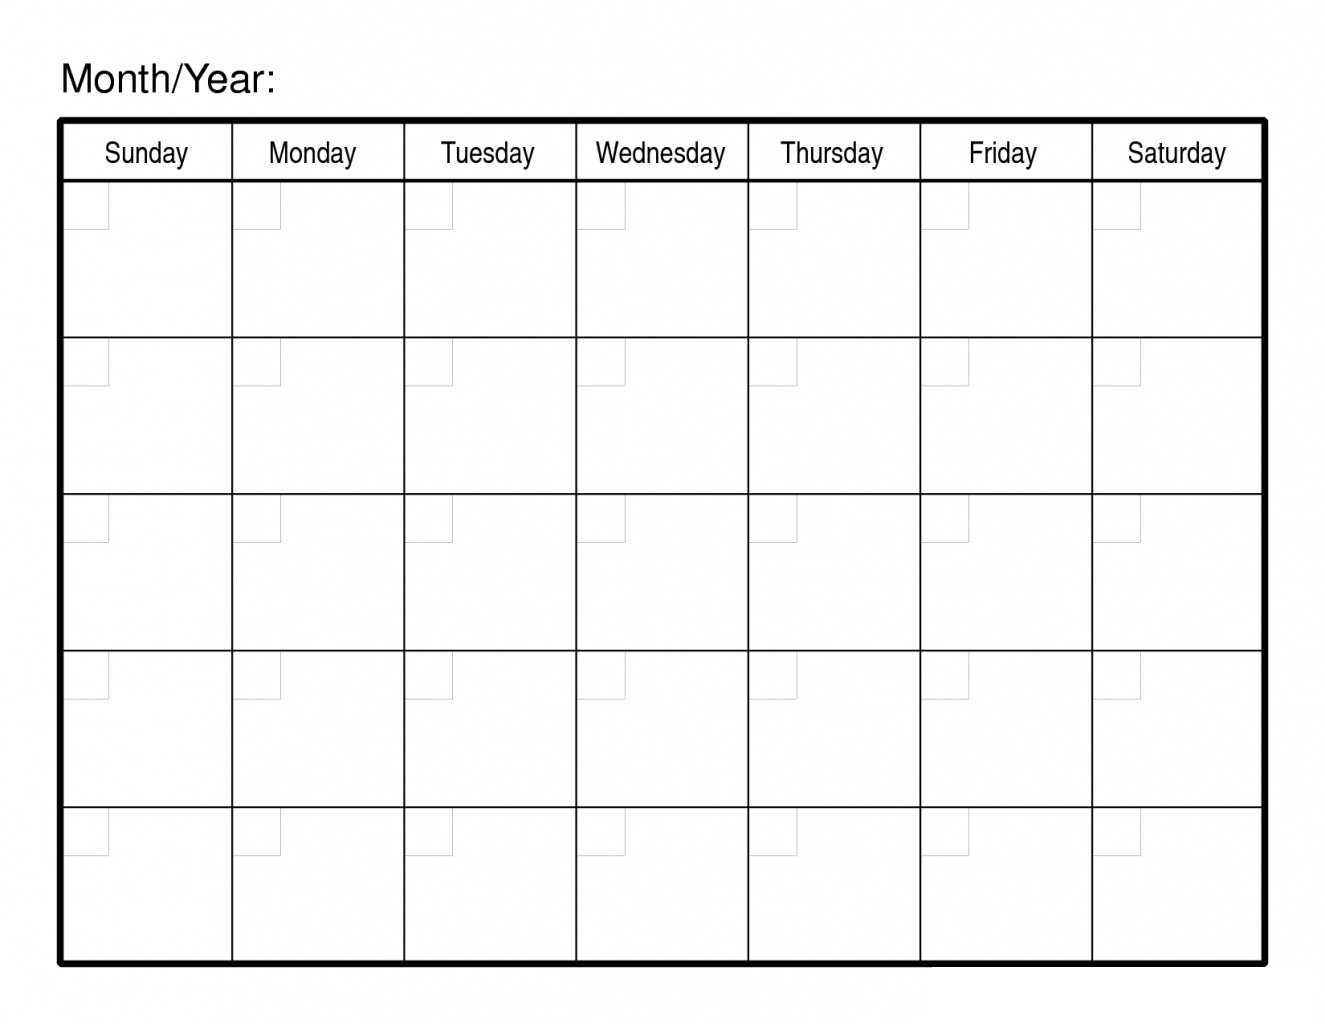 Daycalendar Mplate Schedule Printable | Smorad for Printable Calendar Day By Day